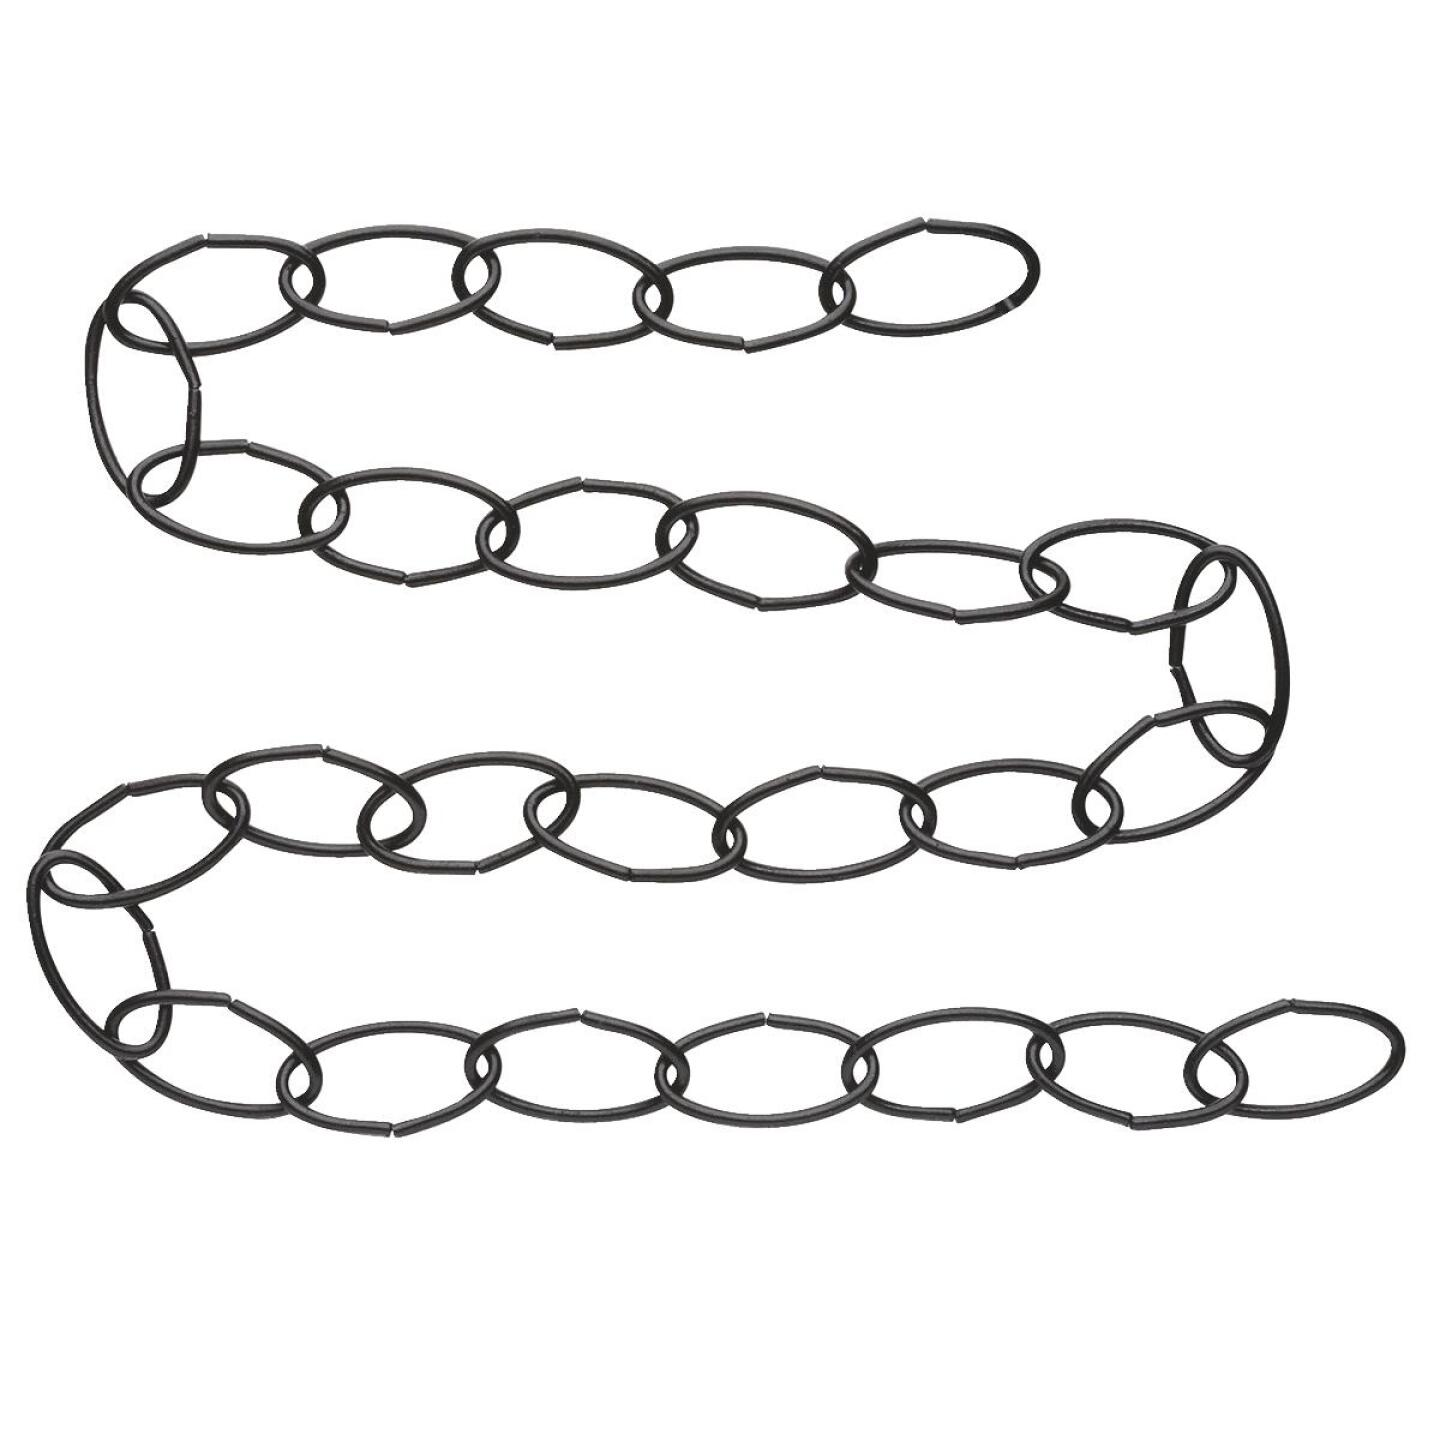 National 36 In. Black Metal Hanging Plant Extension Chain Image 2